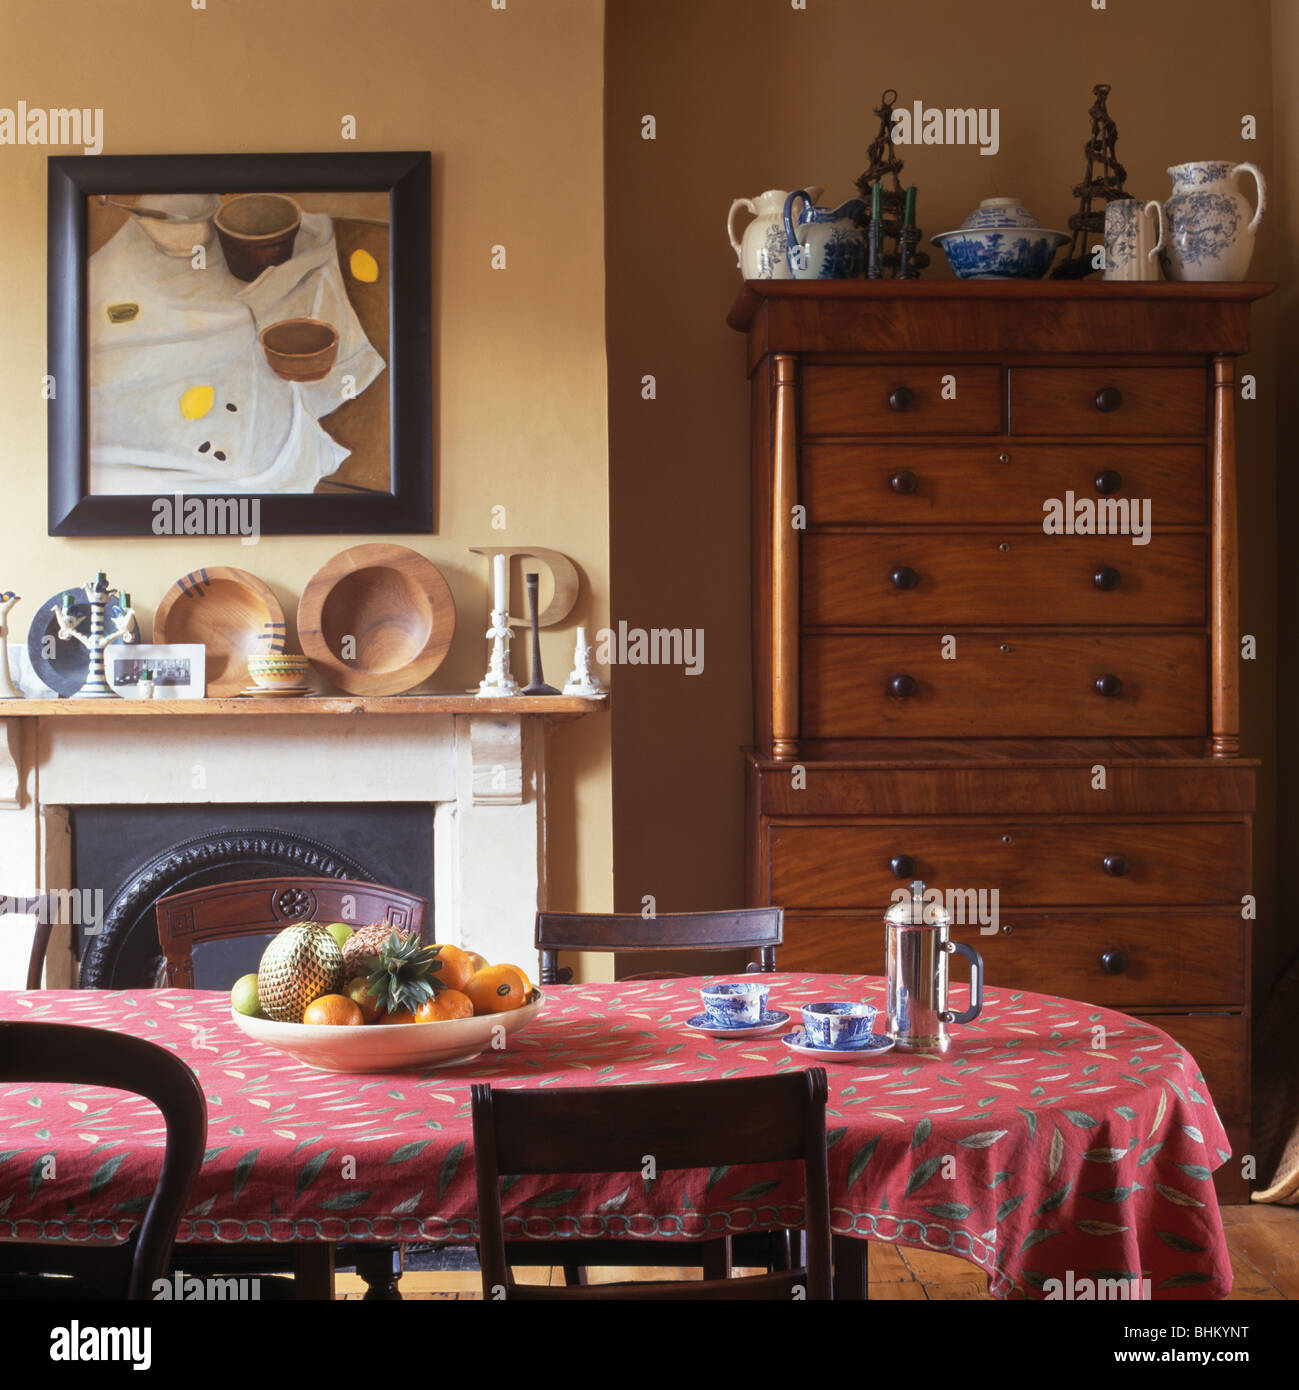 Pink Patterned Cloth On Table In Small Dining Room With Tall Antique Chest  Of Drawers Beside Fireplace